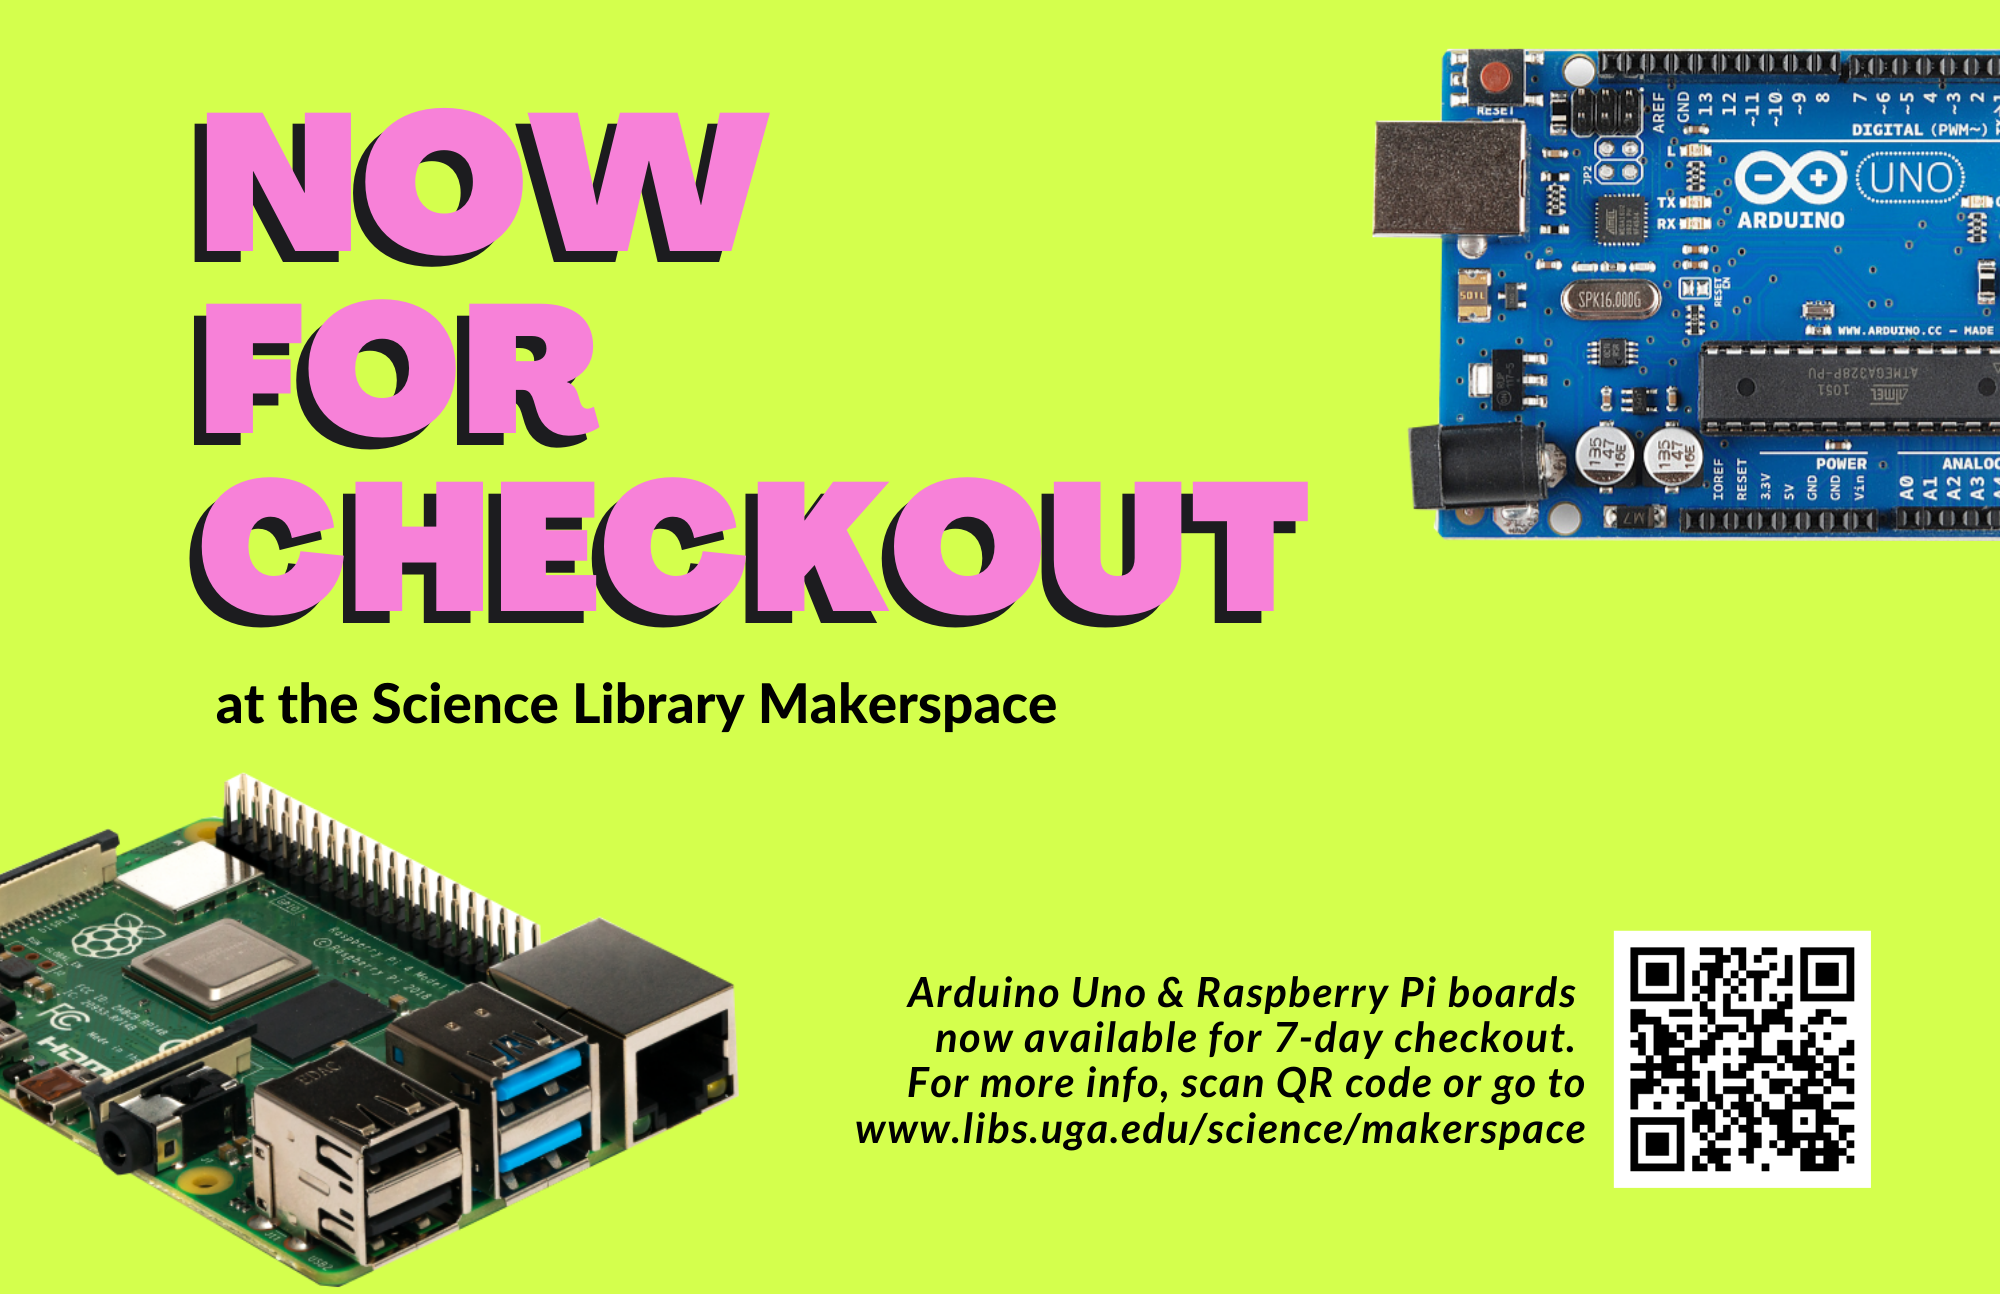 arduino and raspberry pi available for checkout